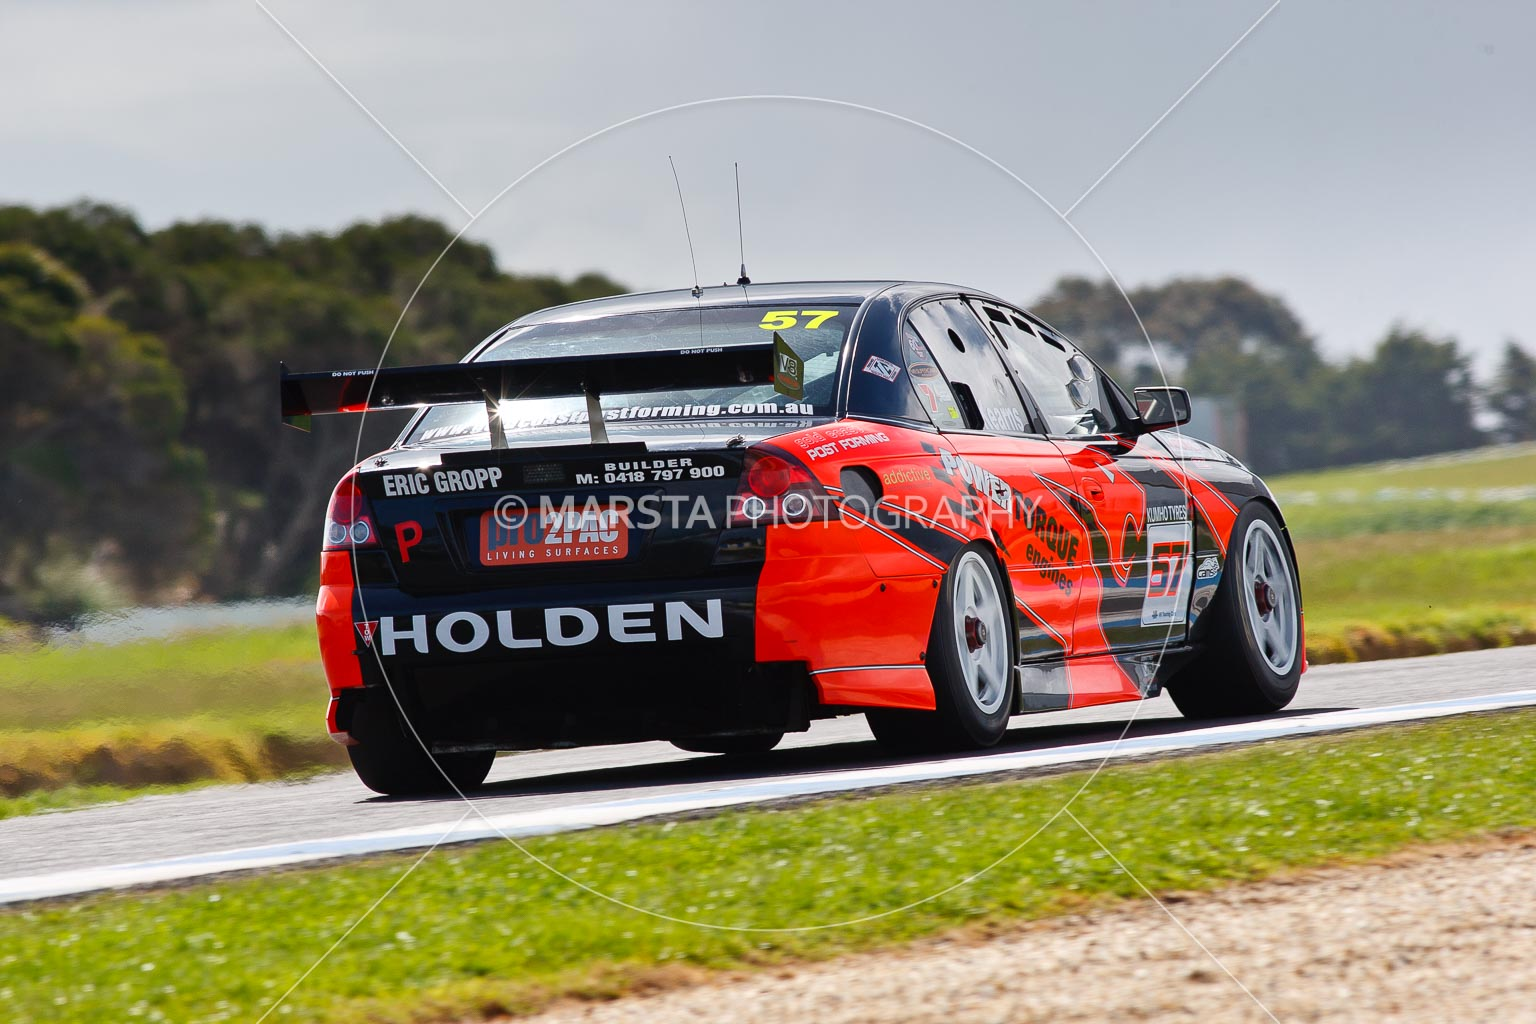 (57);23 September 2012;57;Australia;Holden Commodore VY;Lyle Kearns;Phillip Island;Shannons Nationals;V8 Touring Cars;VIC;Victoria;auto;motorsport;racing;super telephoto